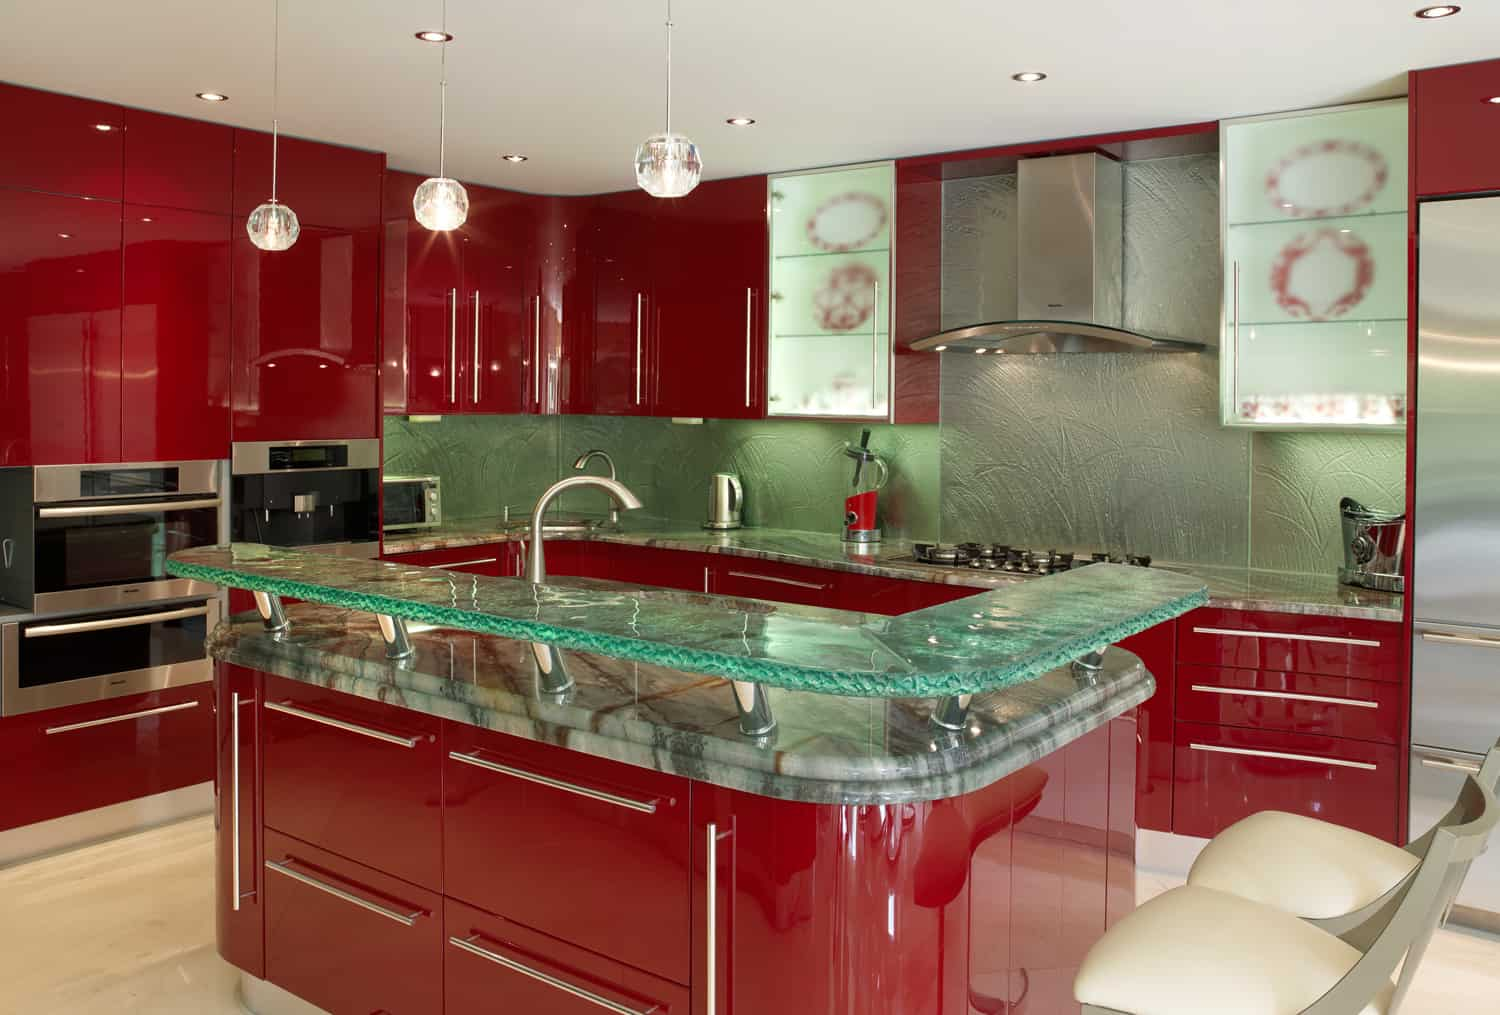 Modern kitchen countertops from unusual materials 30 ideas for Kitchen countertop planner